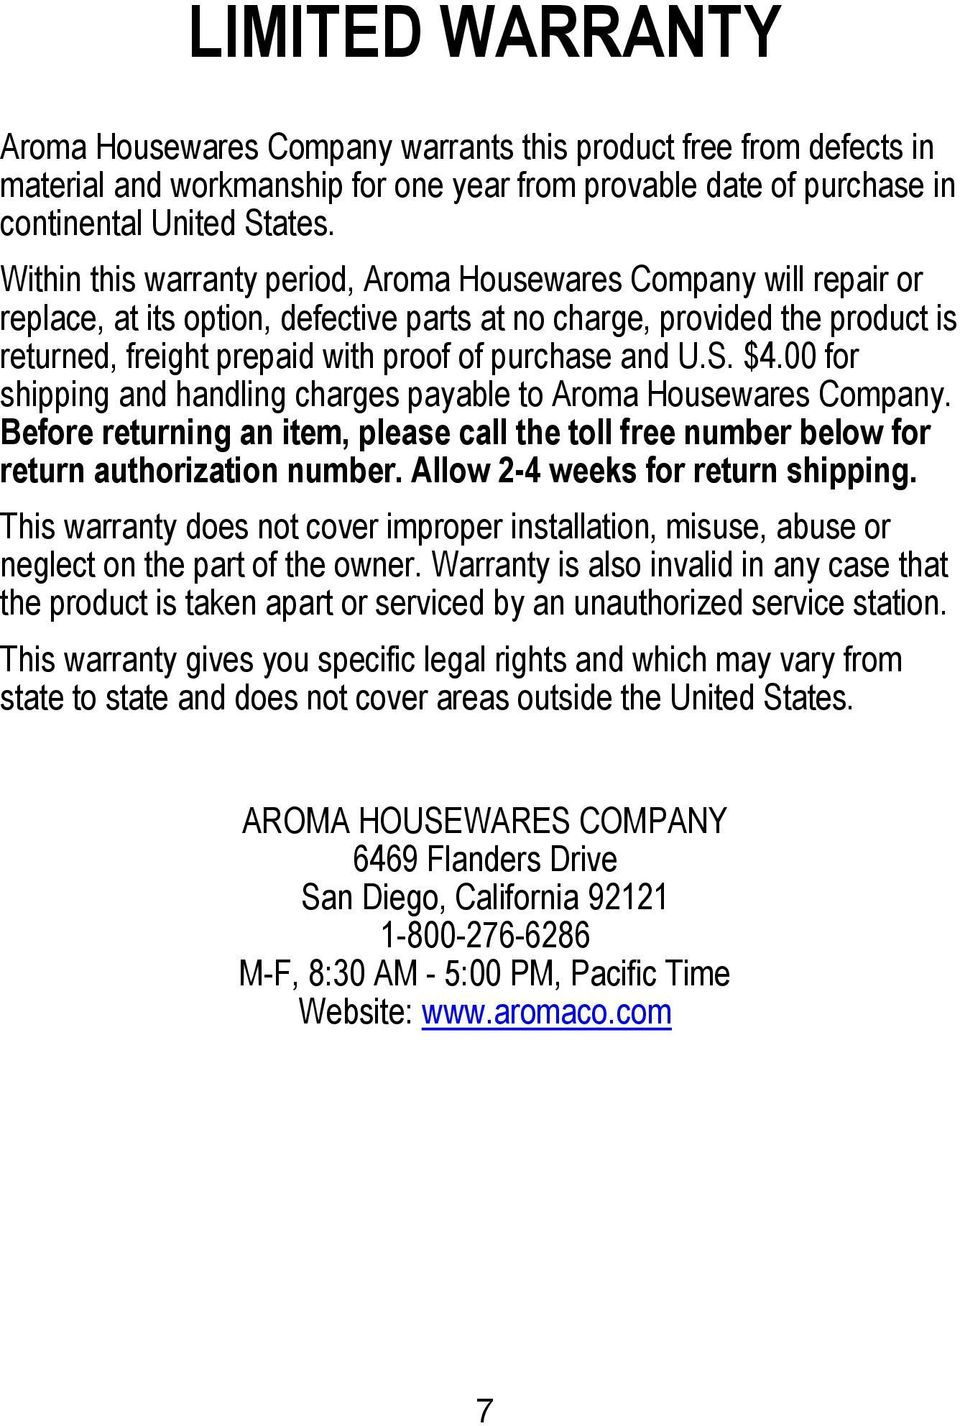 U.S. $4.00 for shipping and handling charges payable to Aroma Housewares Company. Before returning an item, please call the toll free number below for return authorization number.